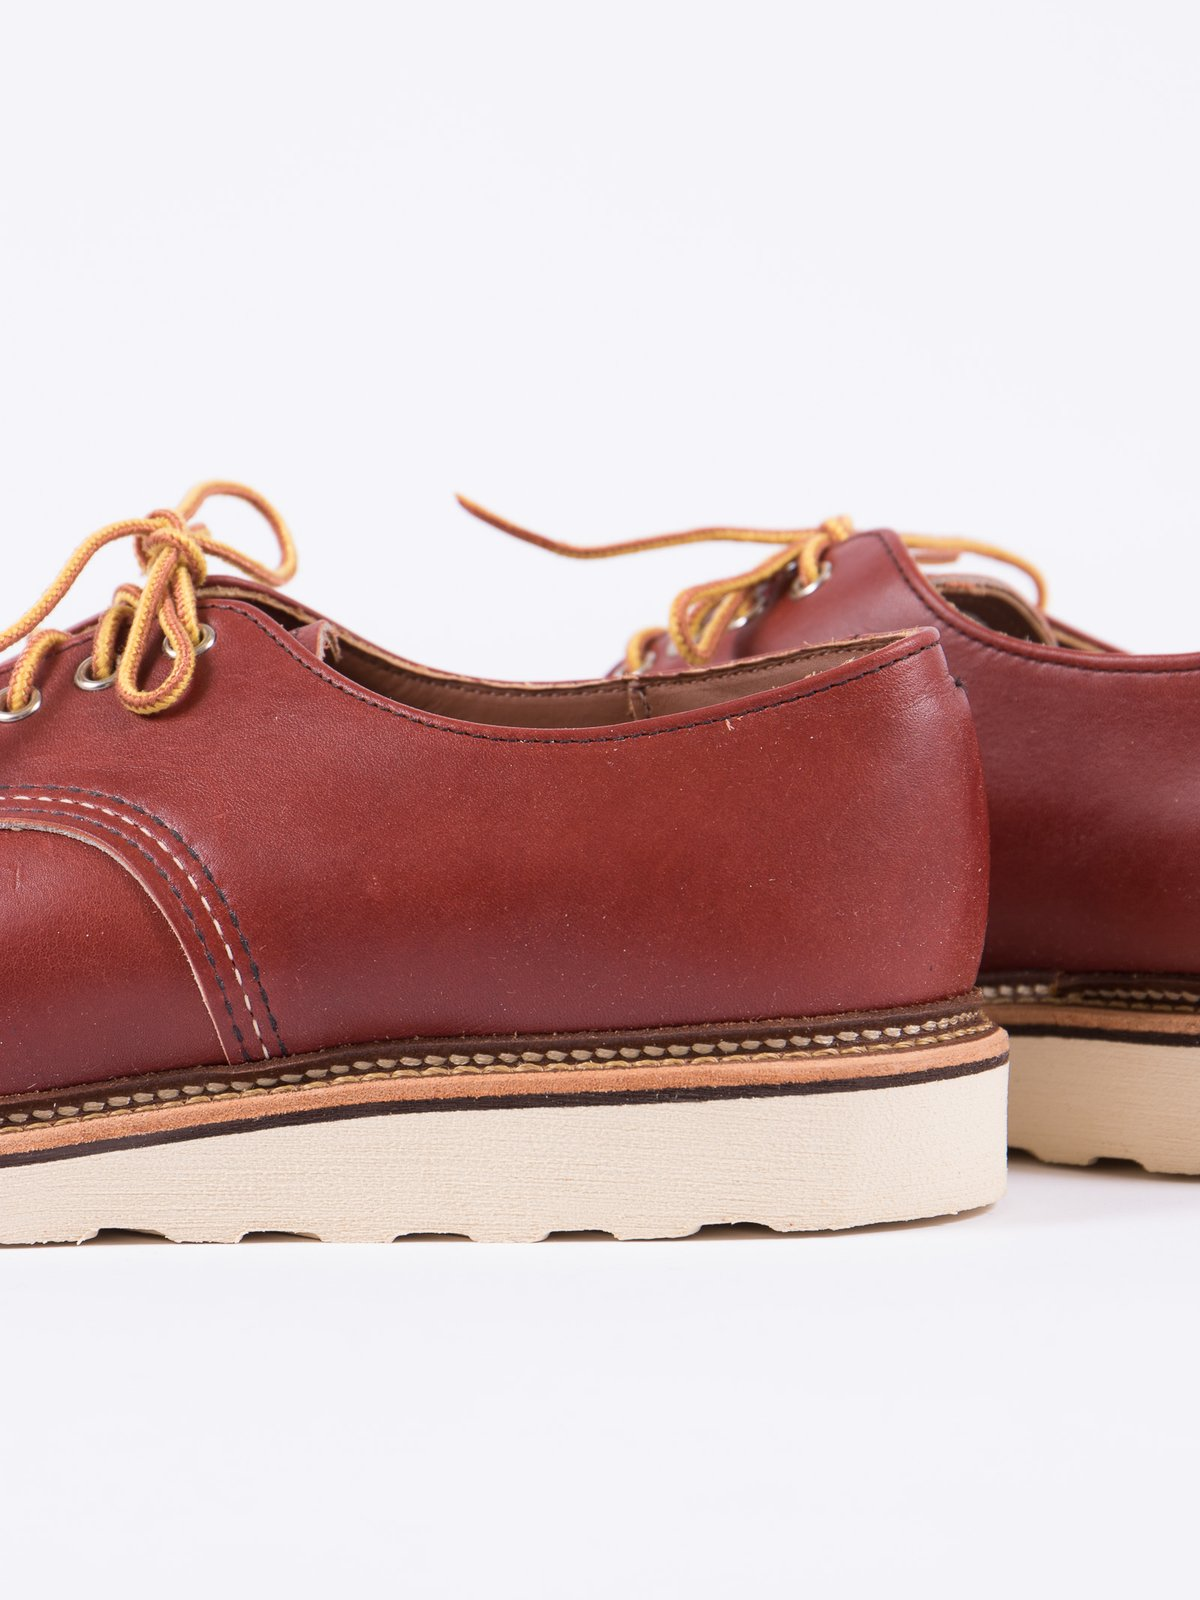 Oro Russet Portage 8103 Classic Oxford Shoe - Image 3